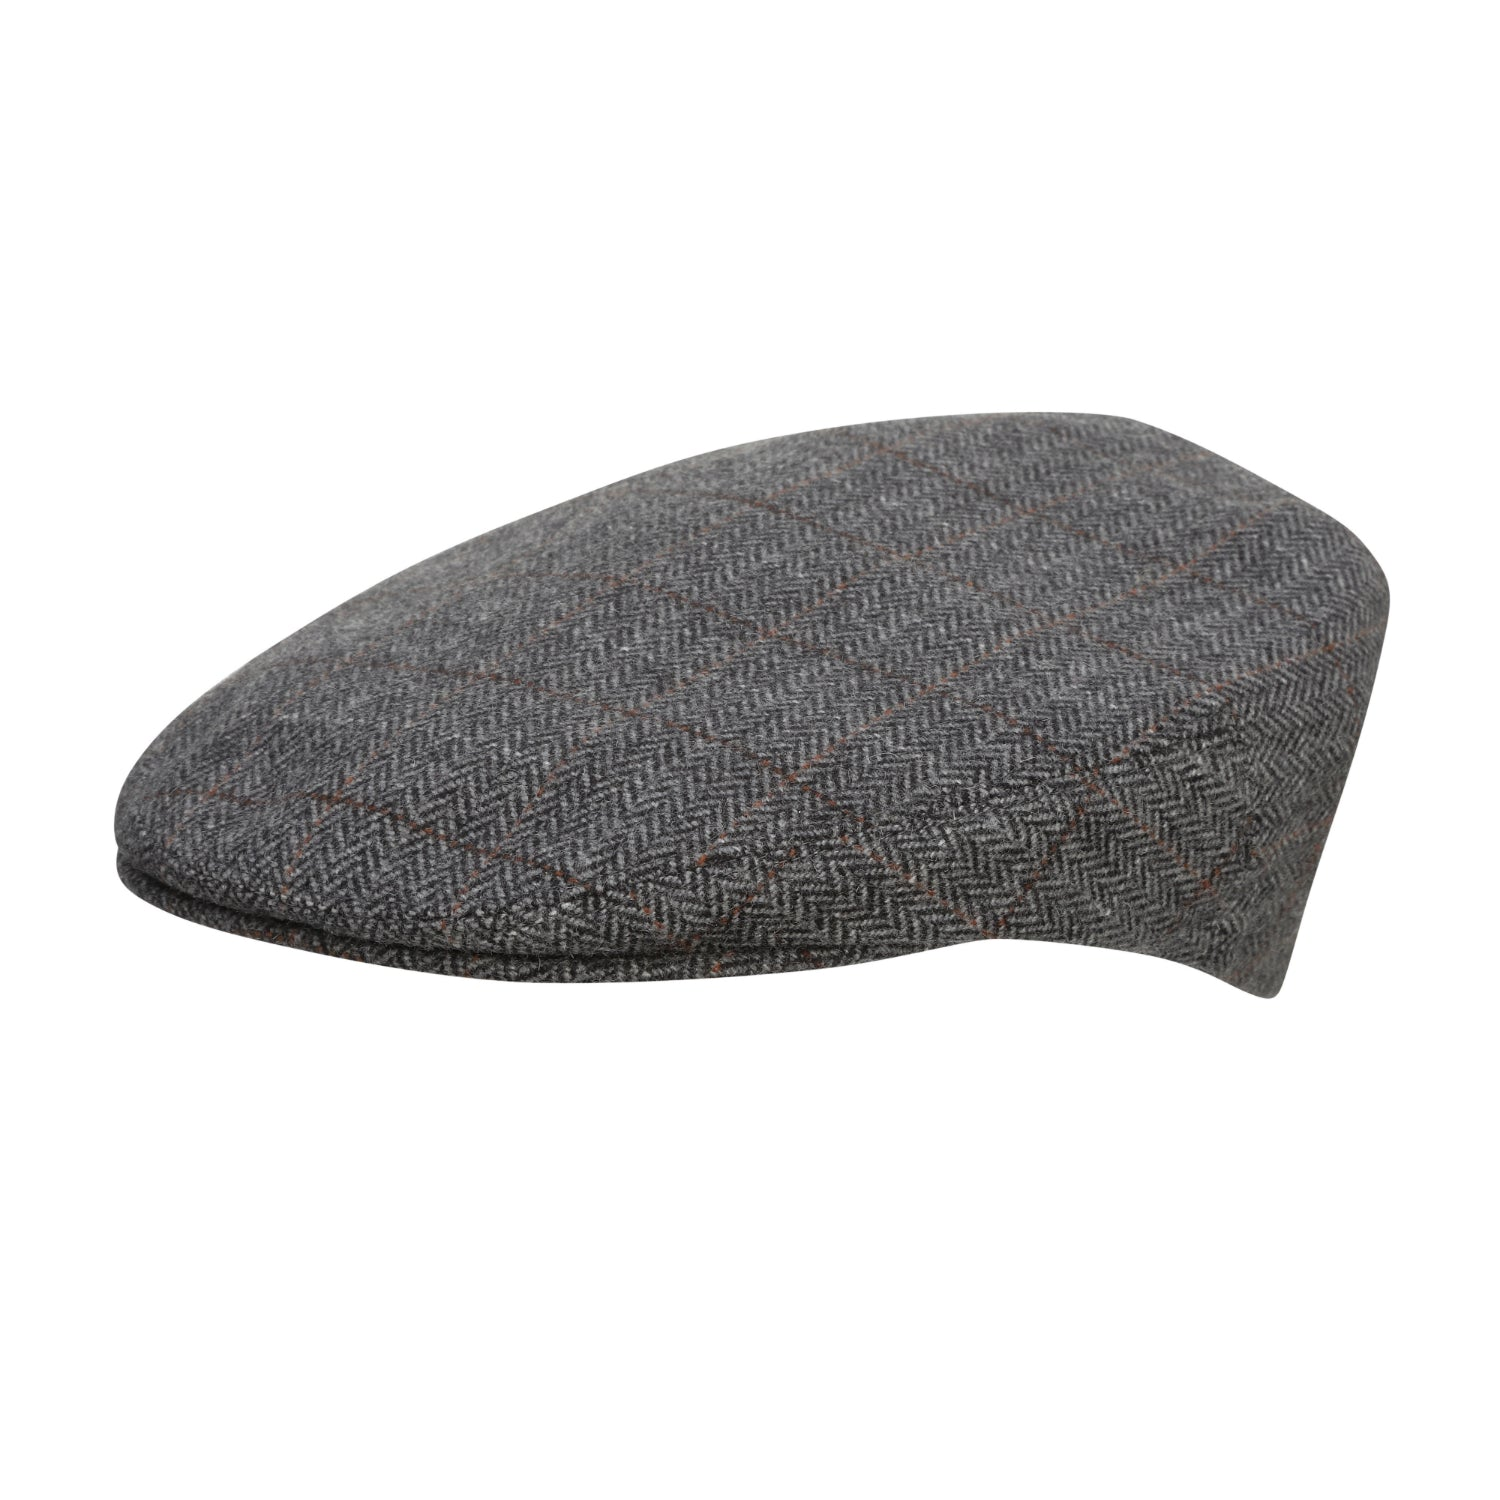 638bb7c1e28 City Sport - Cool Comfort - Wool Flat Cap - Grey Herringbone 3140 ...